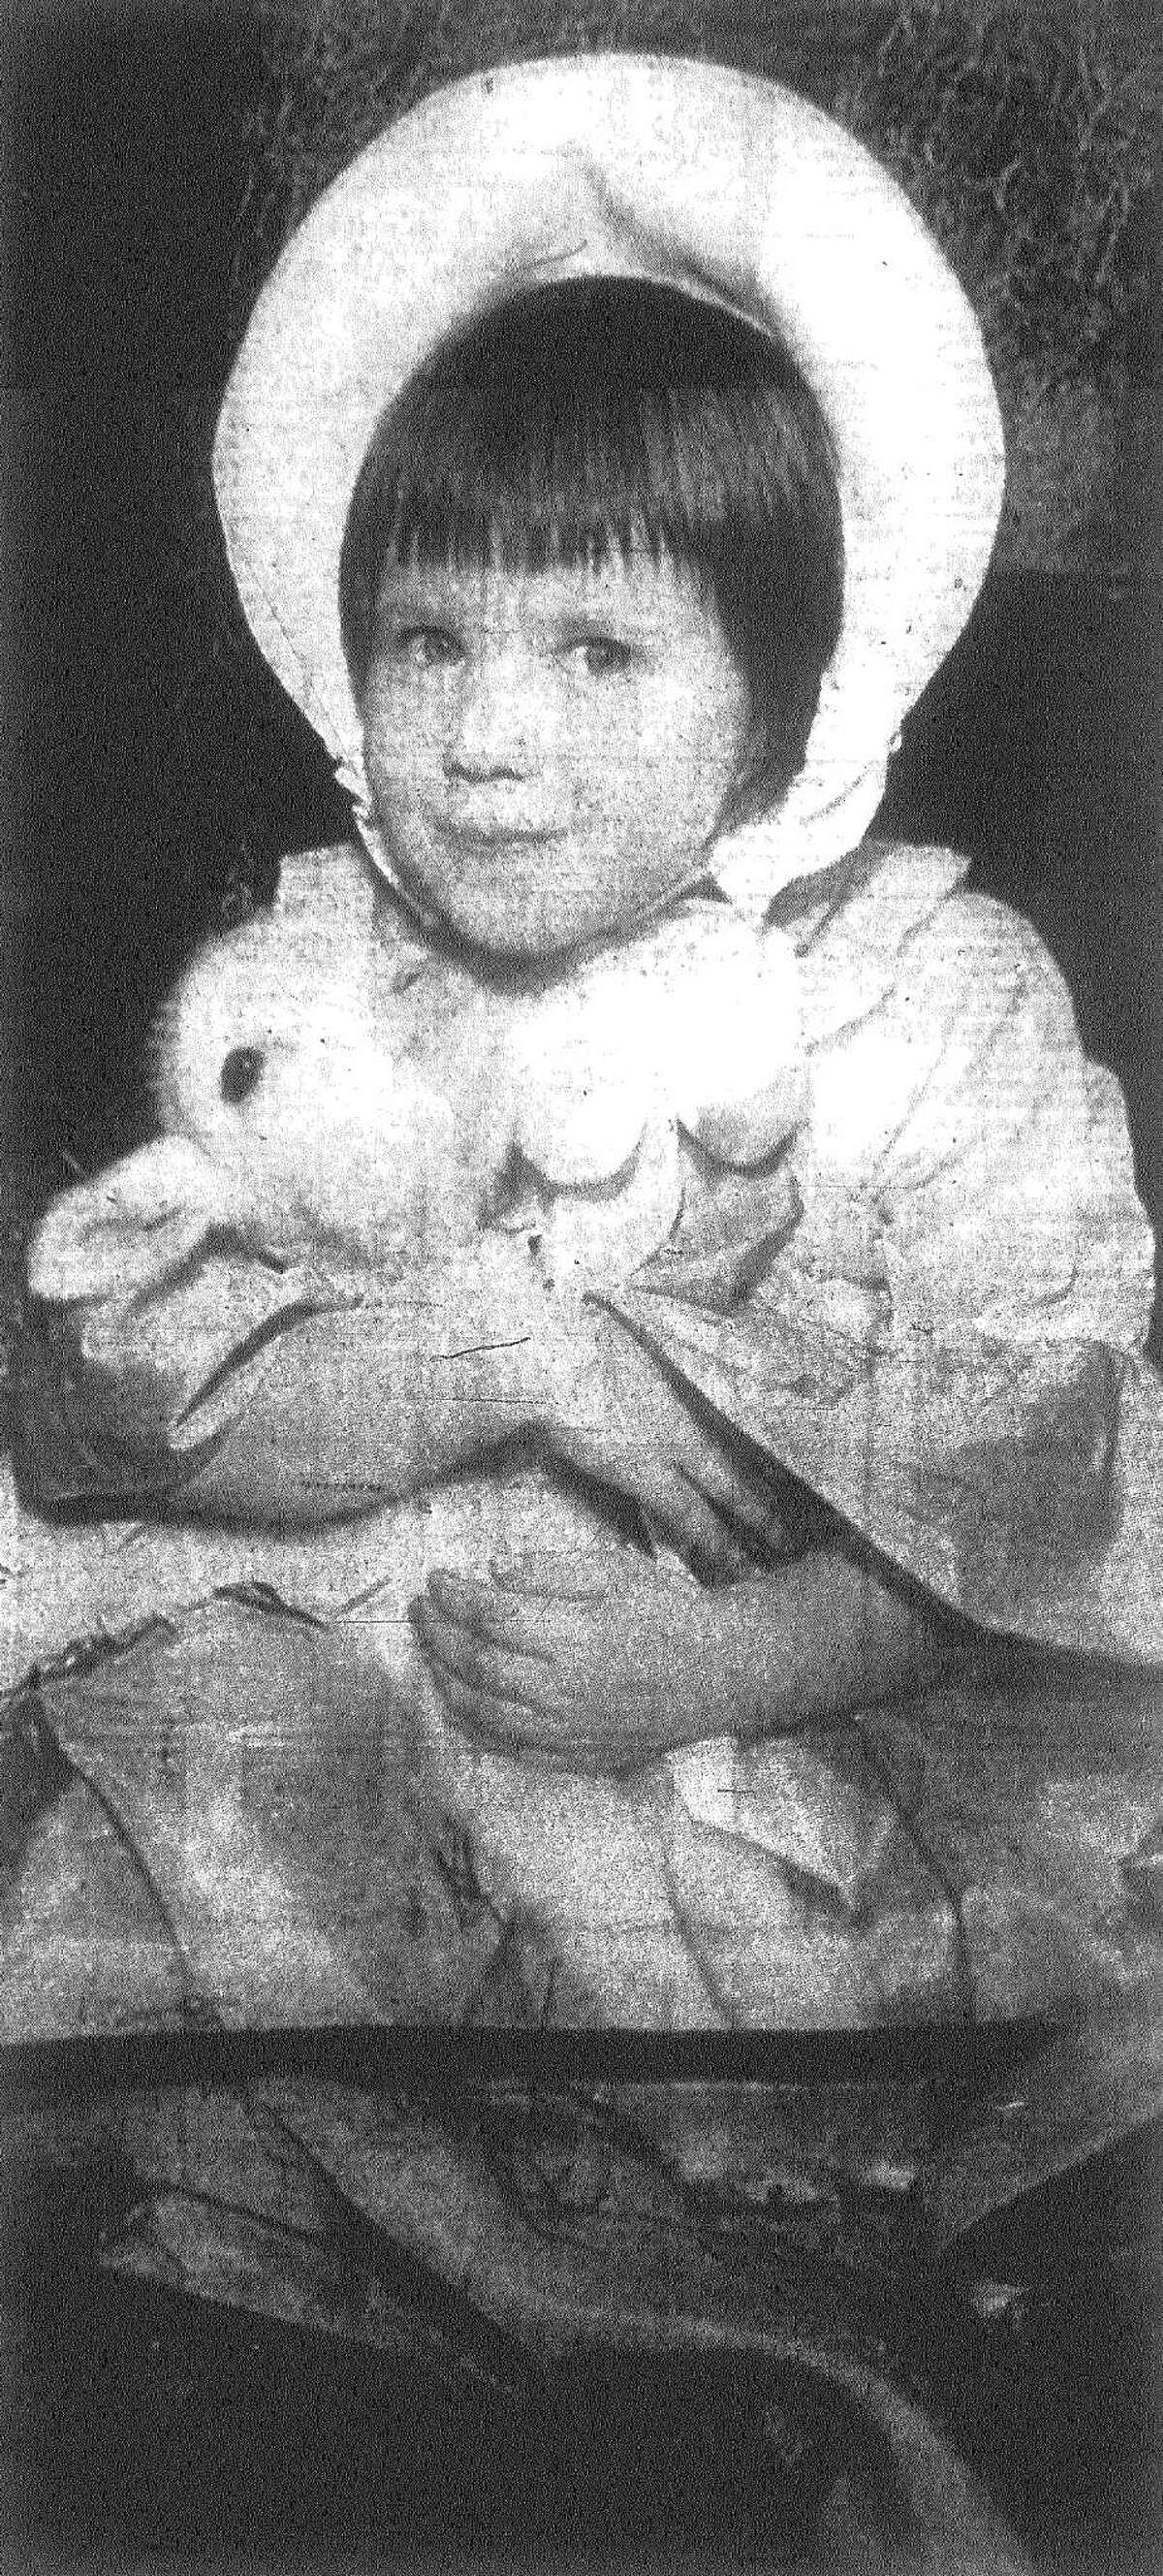 Little Miss Rosslyn Jeanne Harlow, 3, daughter of Mr. and Mrs. Philip G. Harlow, is